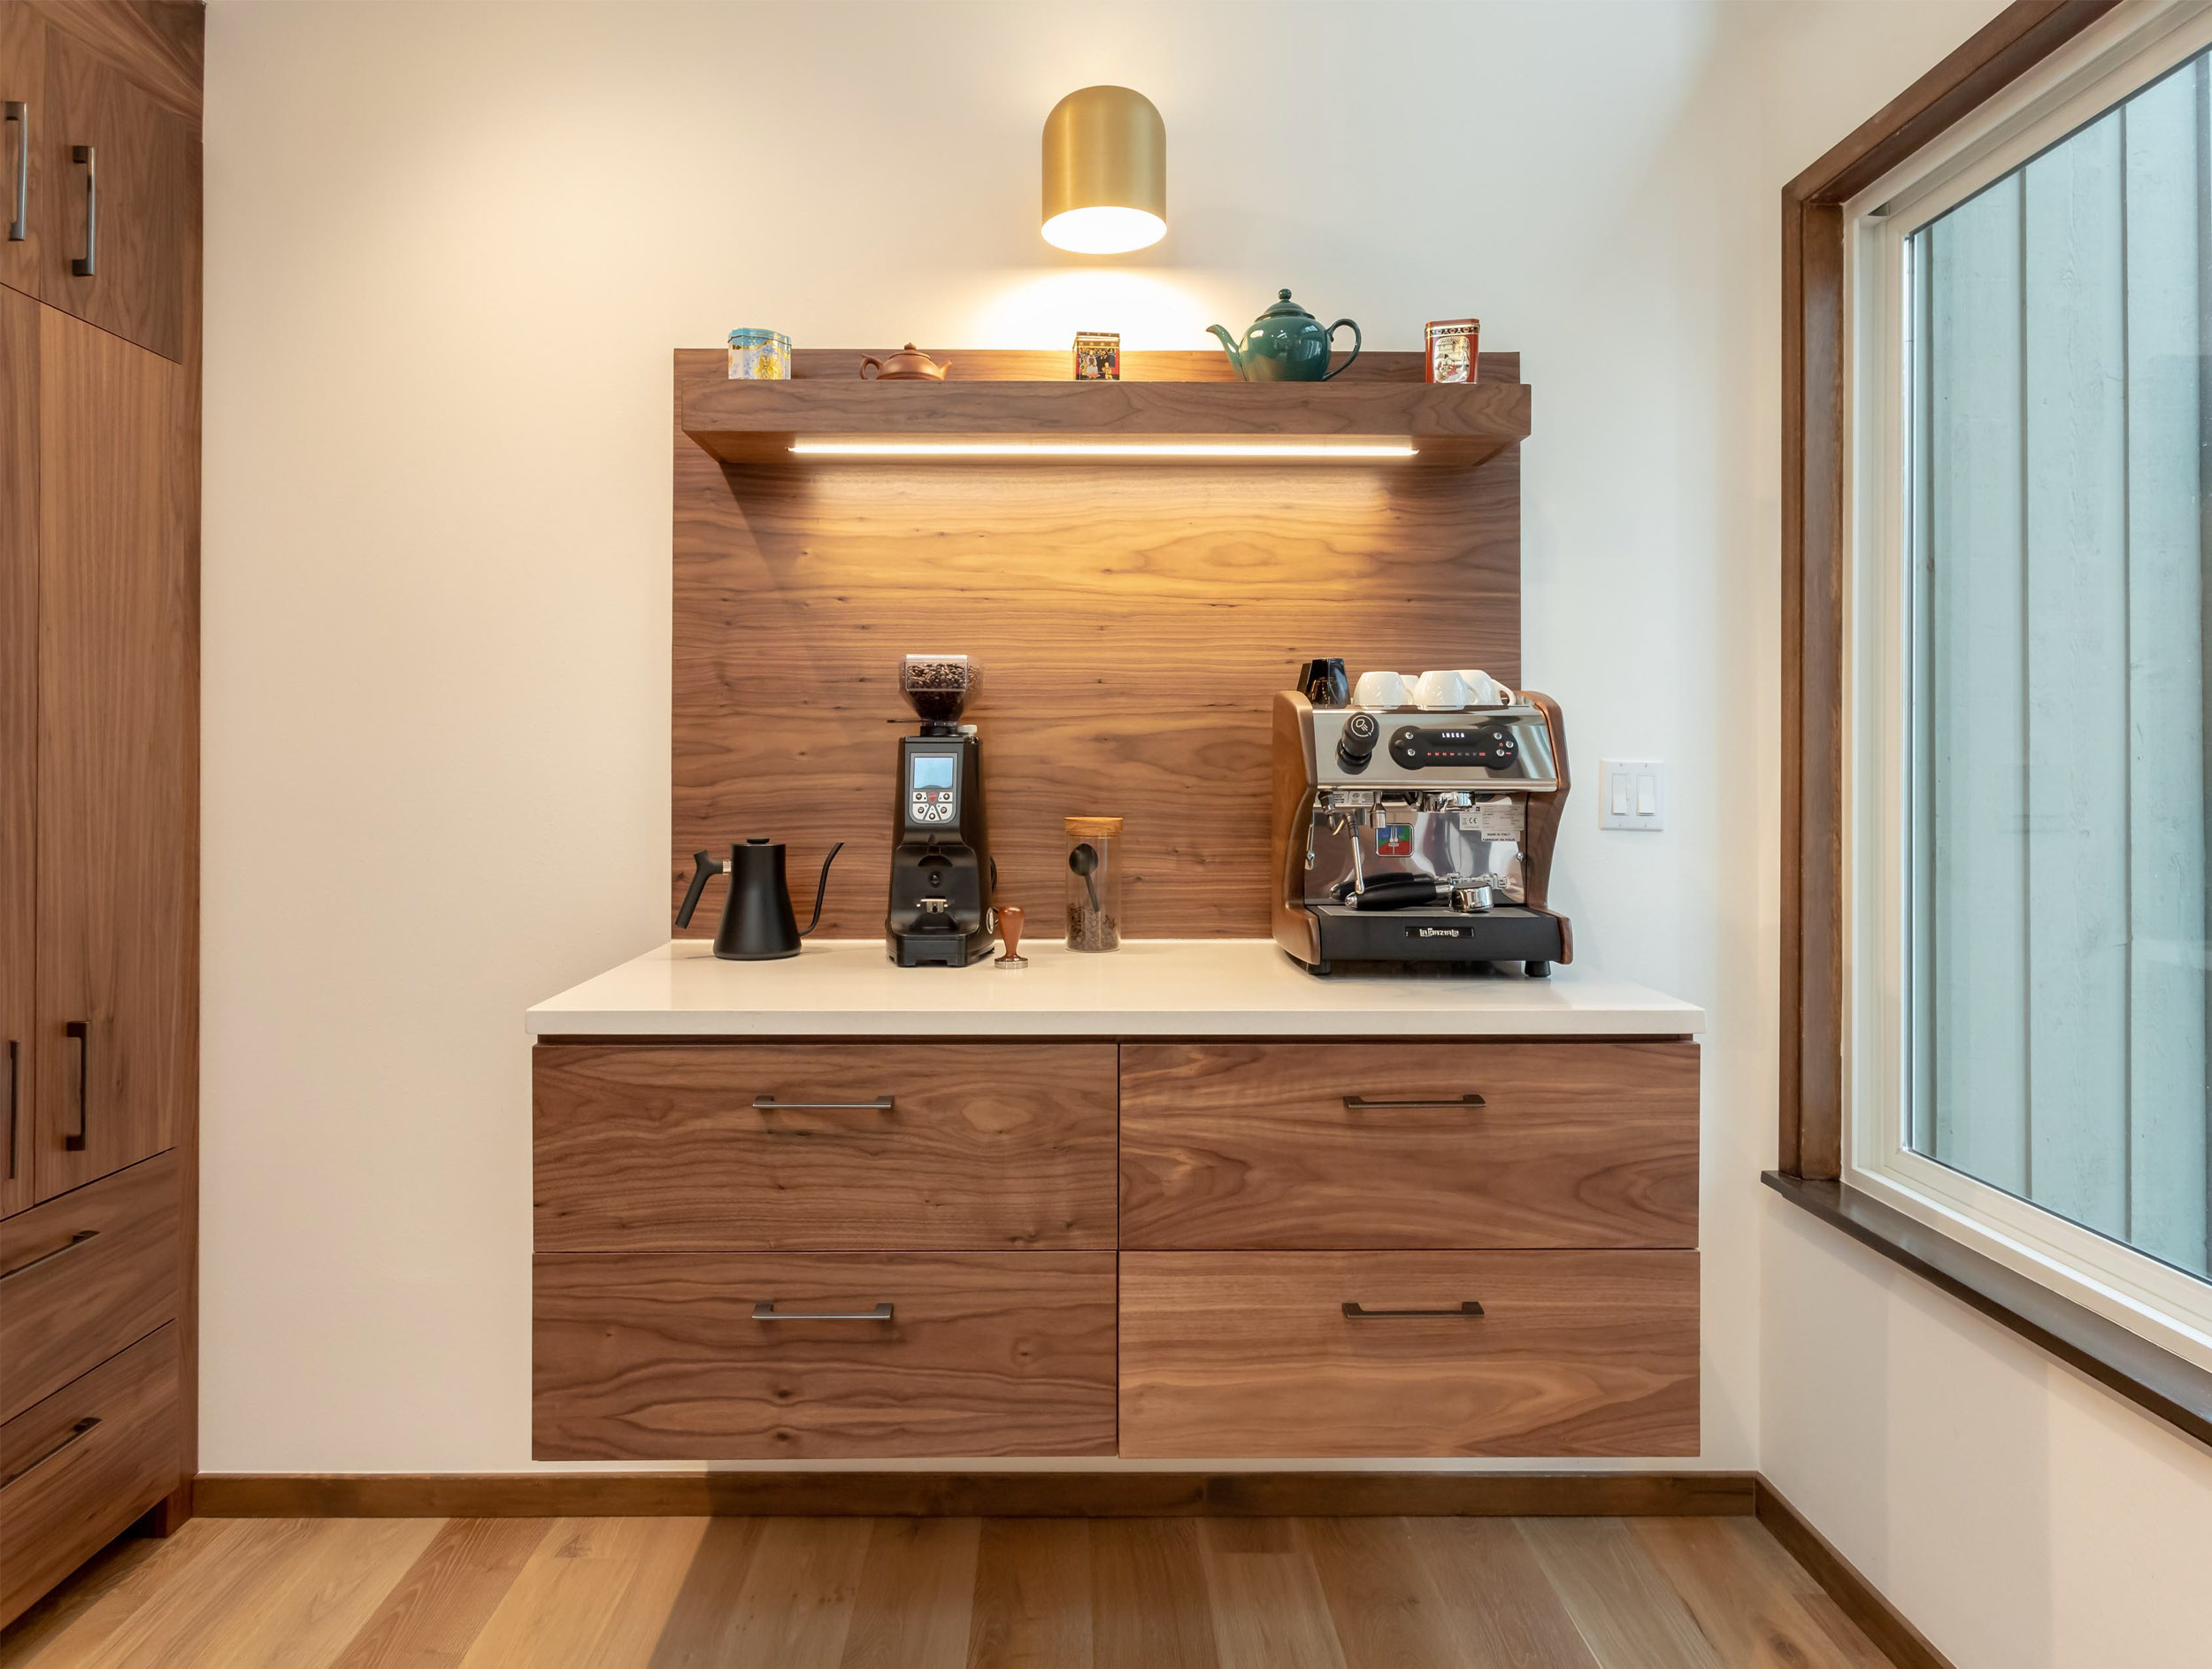 The owners were looking to elevate their coffee and tea game. A dedicated place for storing and preparing beverages was a priority for them.